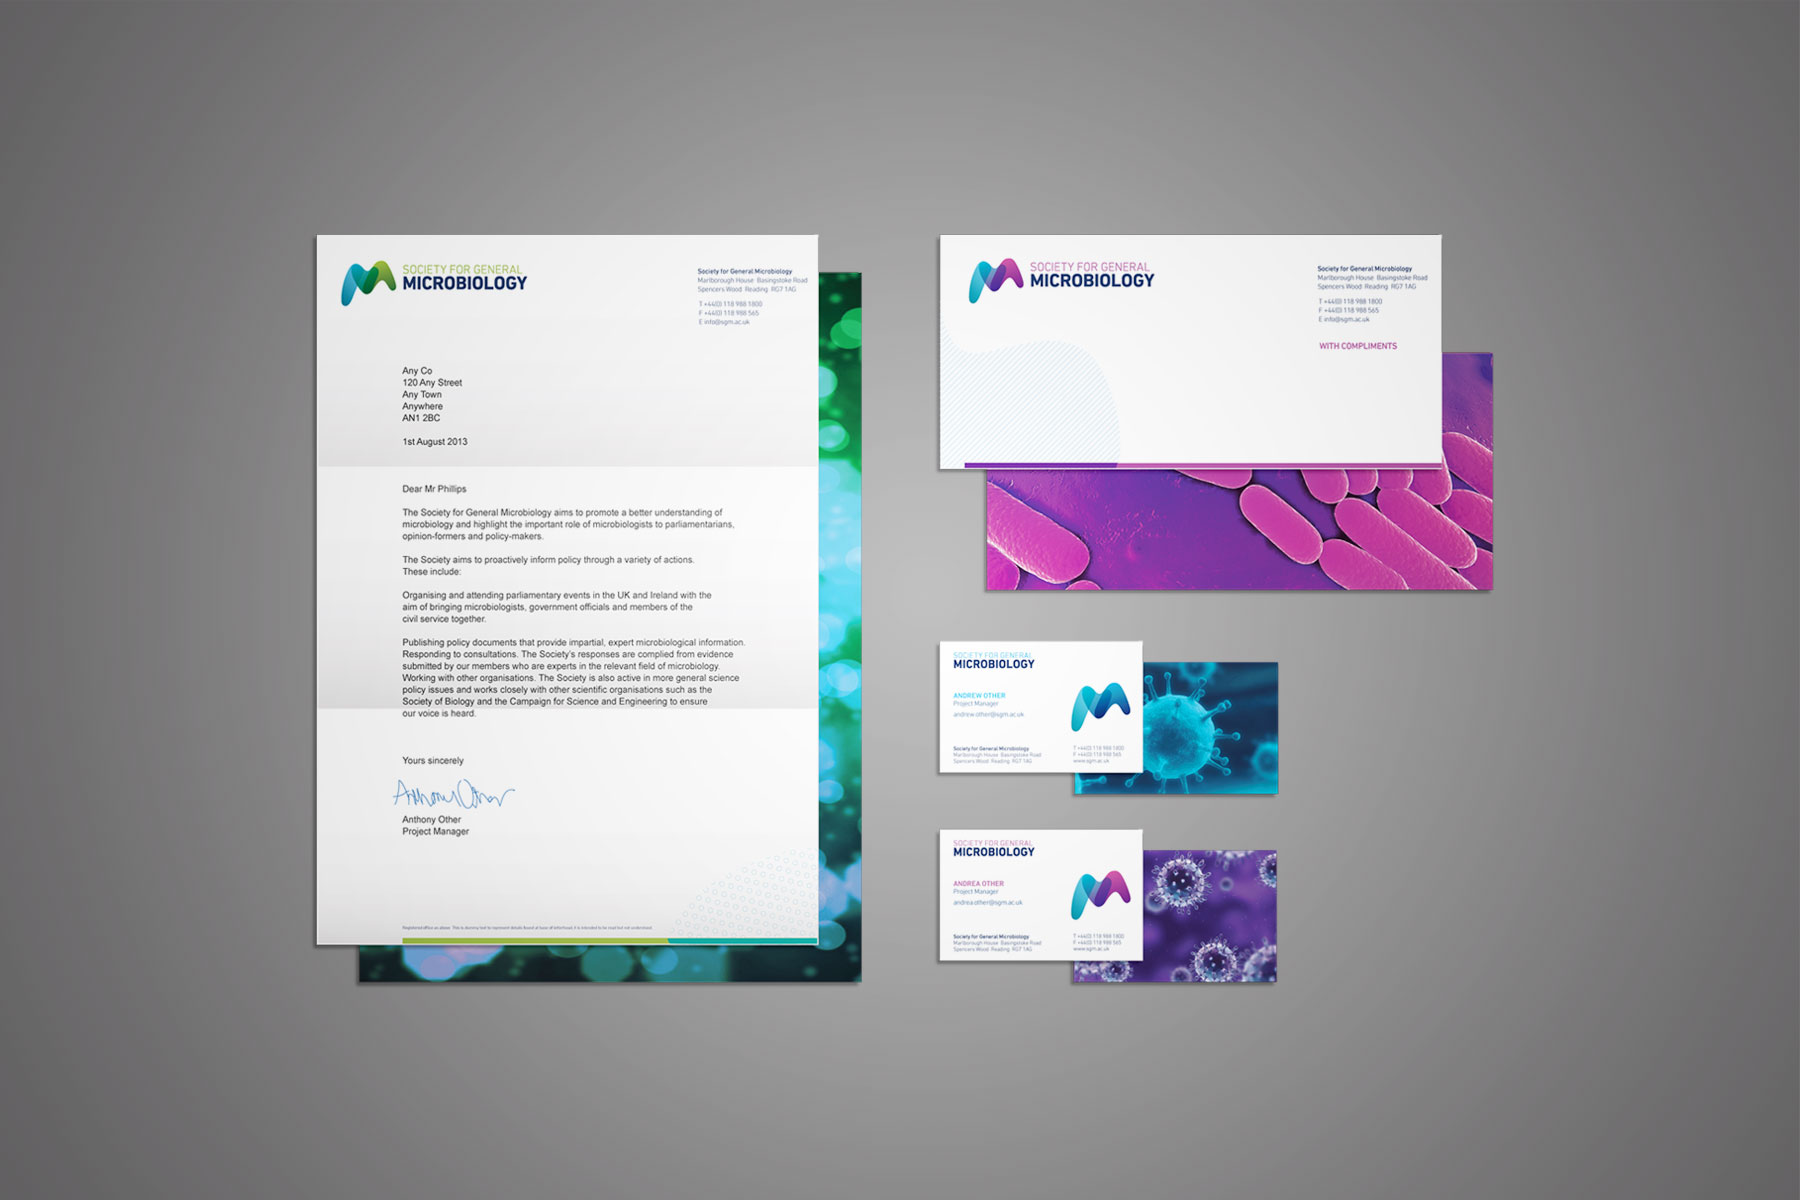 Similarly to the business card, the full stationary set shows how the brand can be corporate yet engaging in the same space.